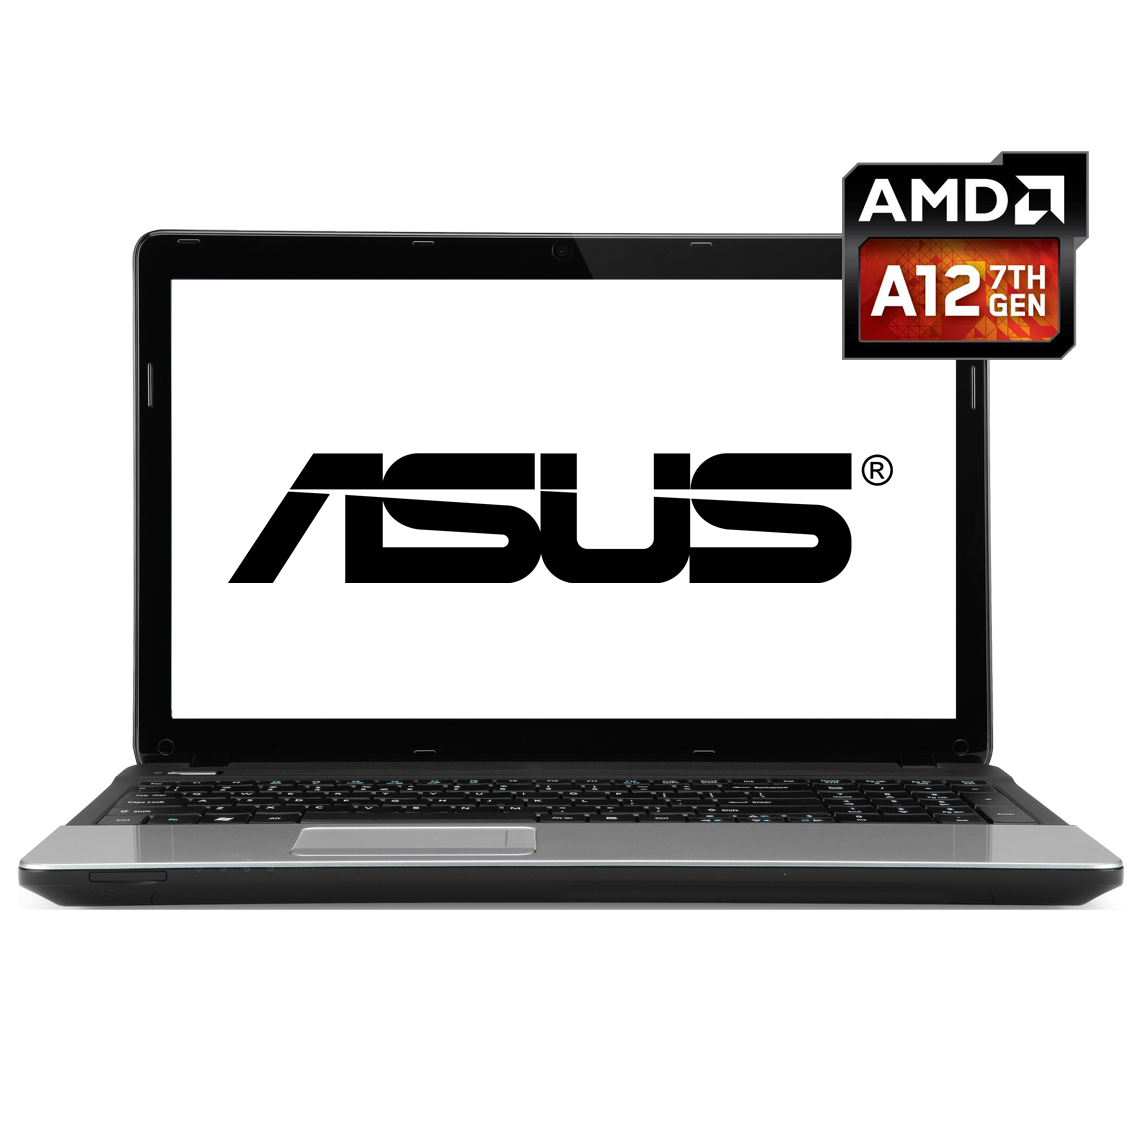 ASUS - 17.3 inch AMD A12